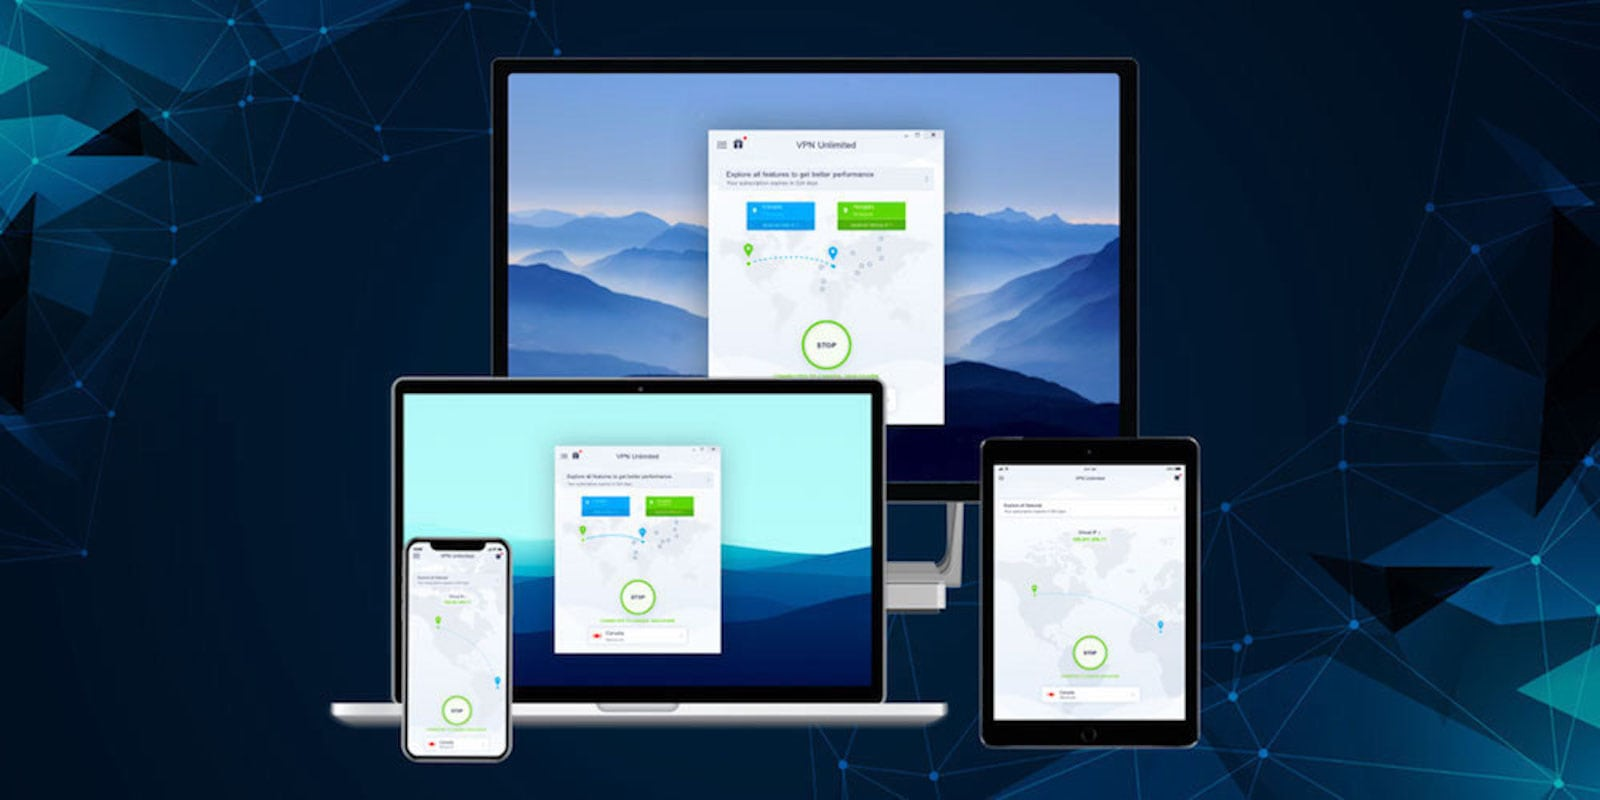 VPN Unlimited Main